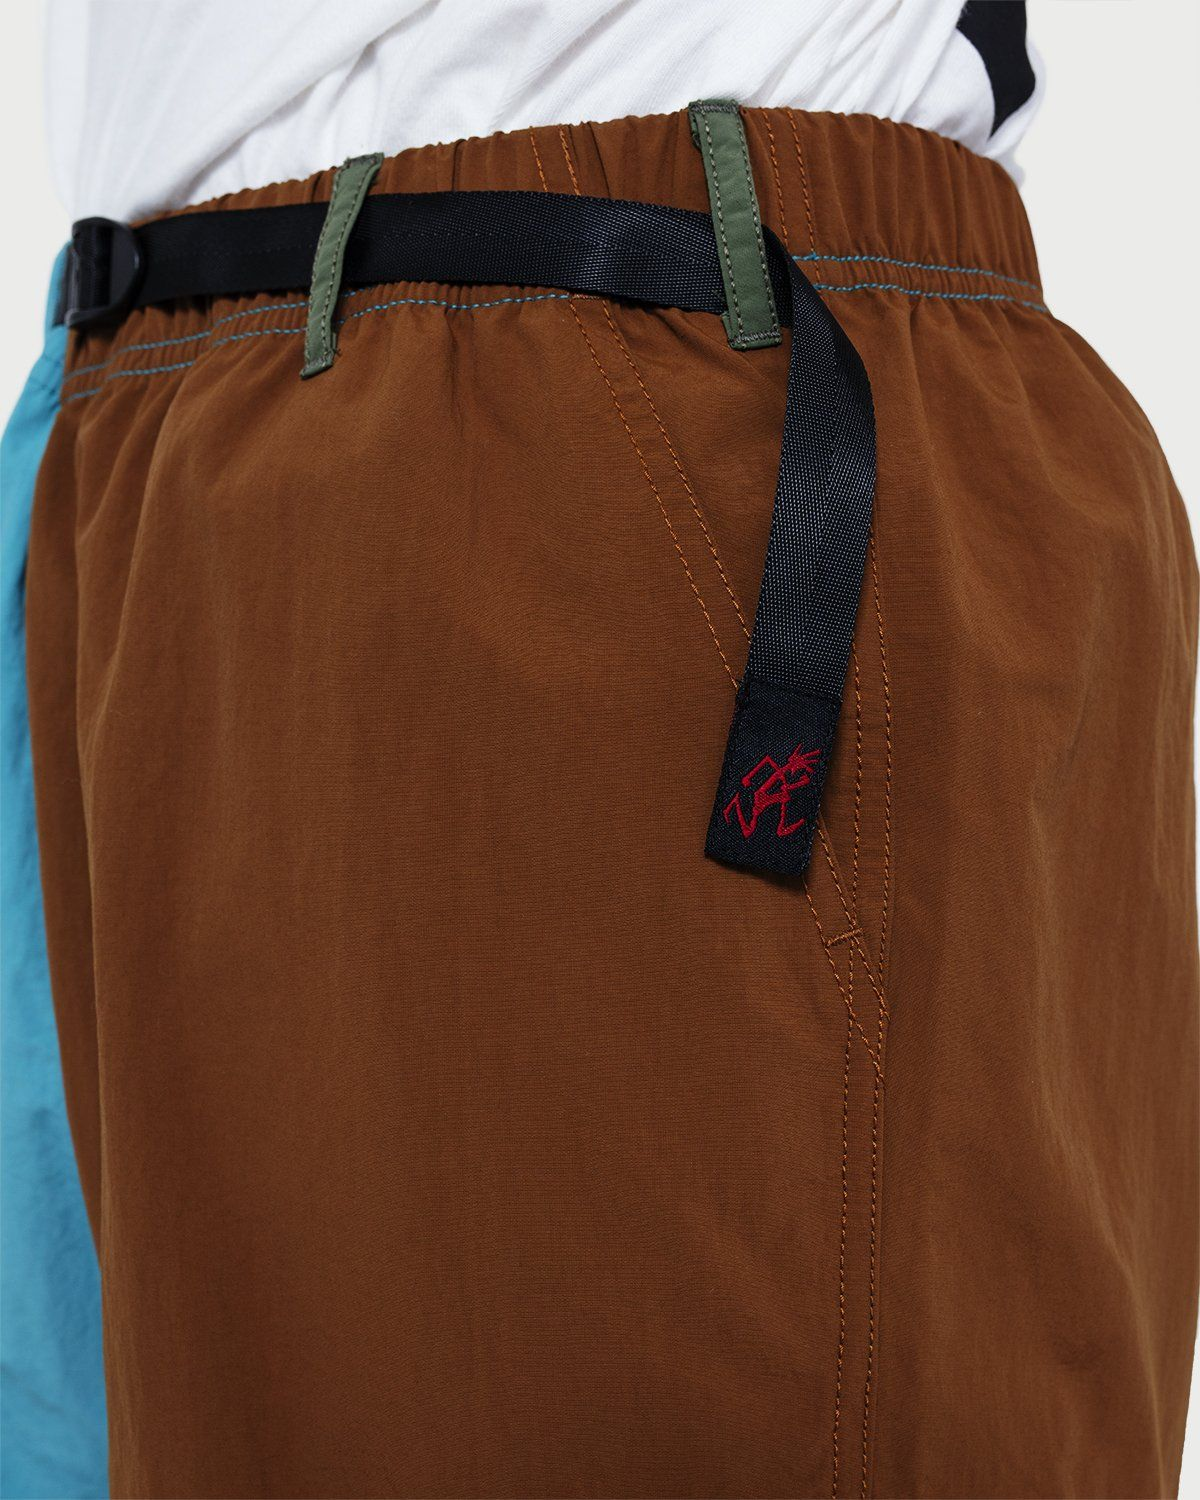 Gramicci - Shell Packable Shorts Aqua/Mocha - Image 2